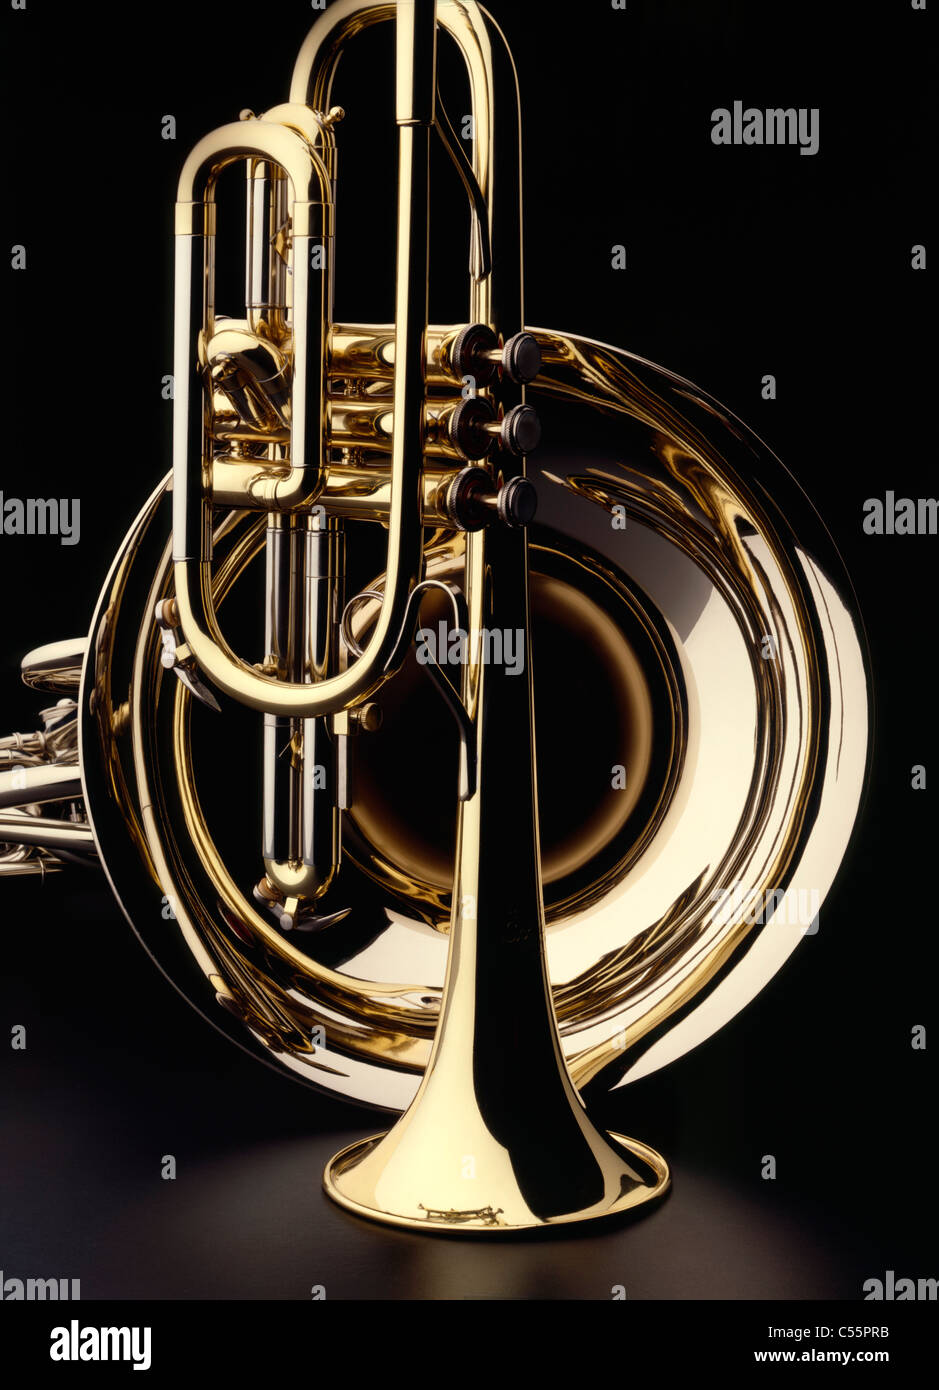 Brass trumpet and french horn on black background, studio ...